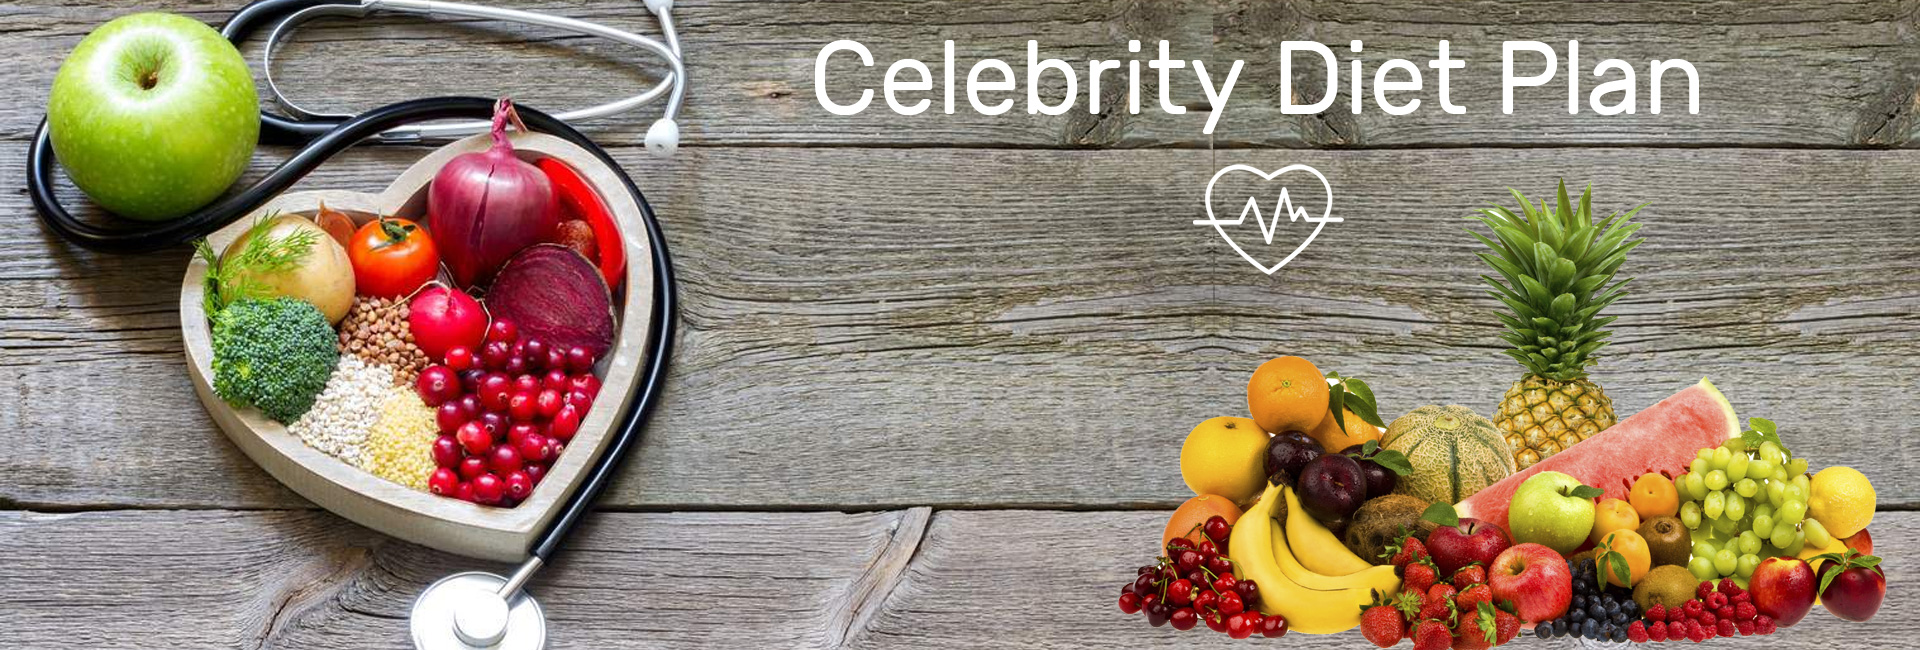 Celebrity Diet Plan In Al Khawaneej